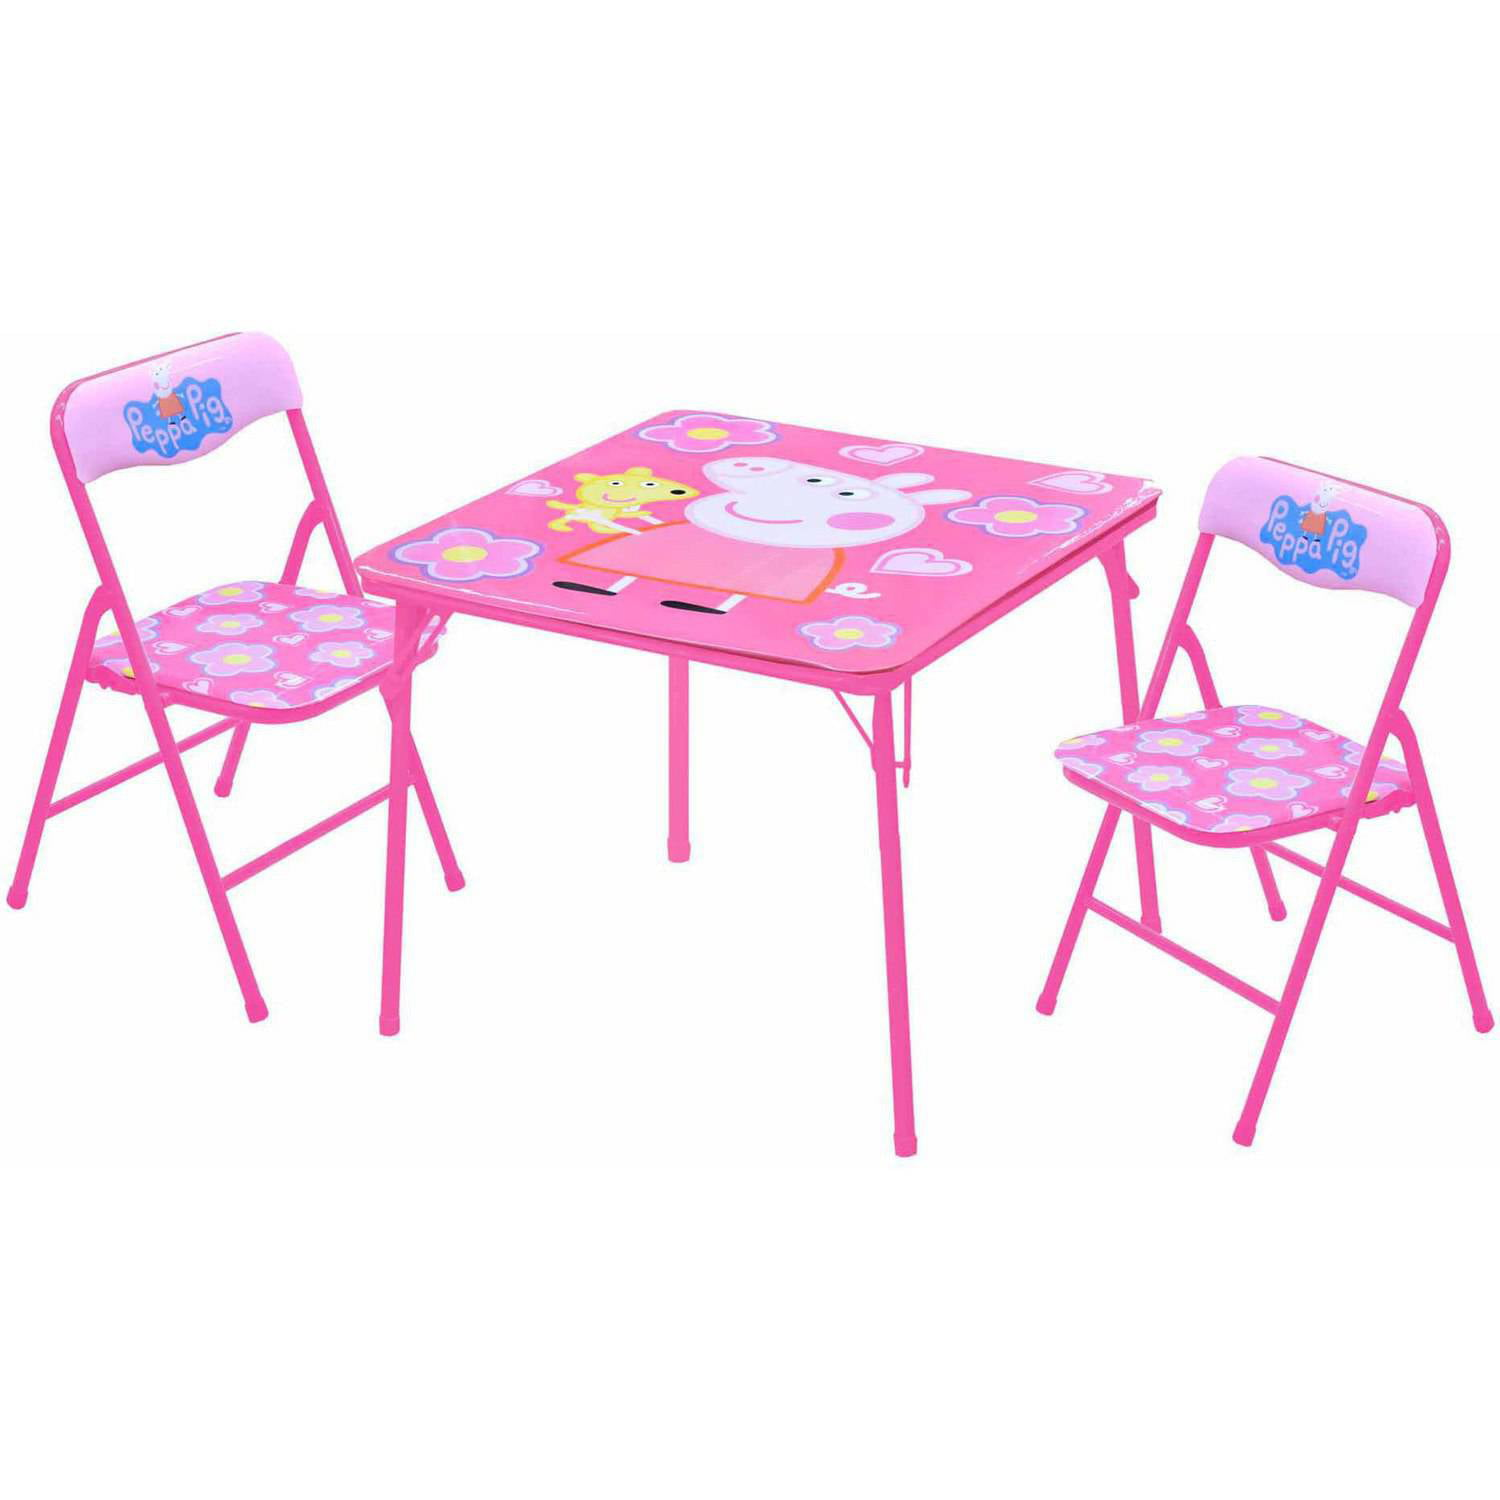 sc 1 st  Walmart & Peppa Pig Table and Chairs Set - Walmart.com